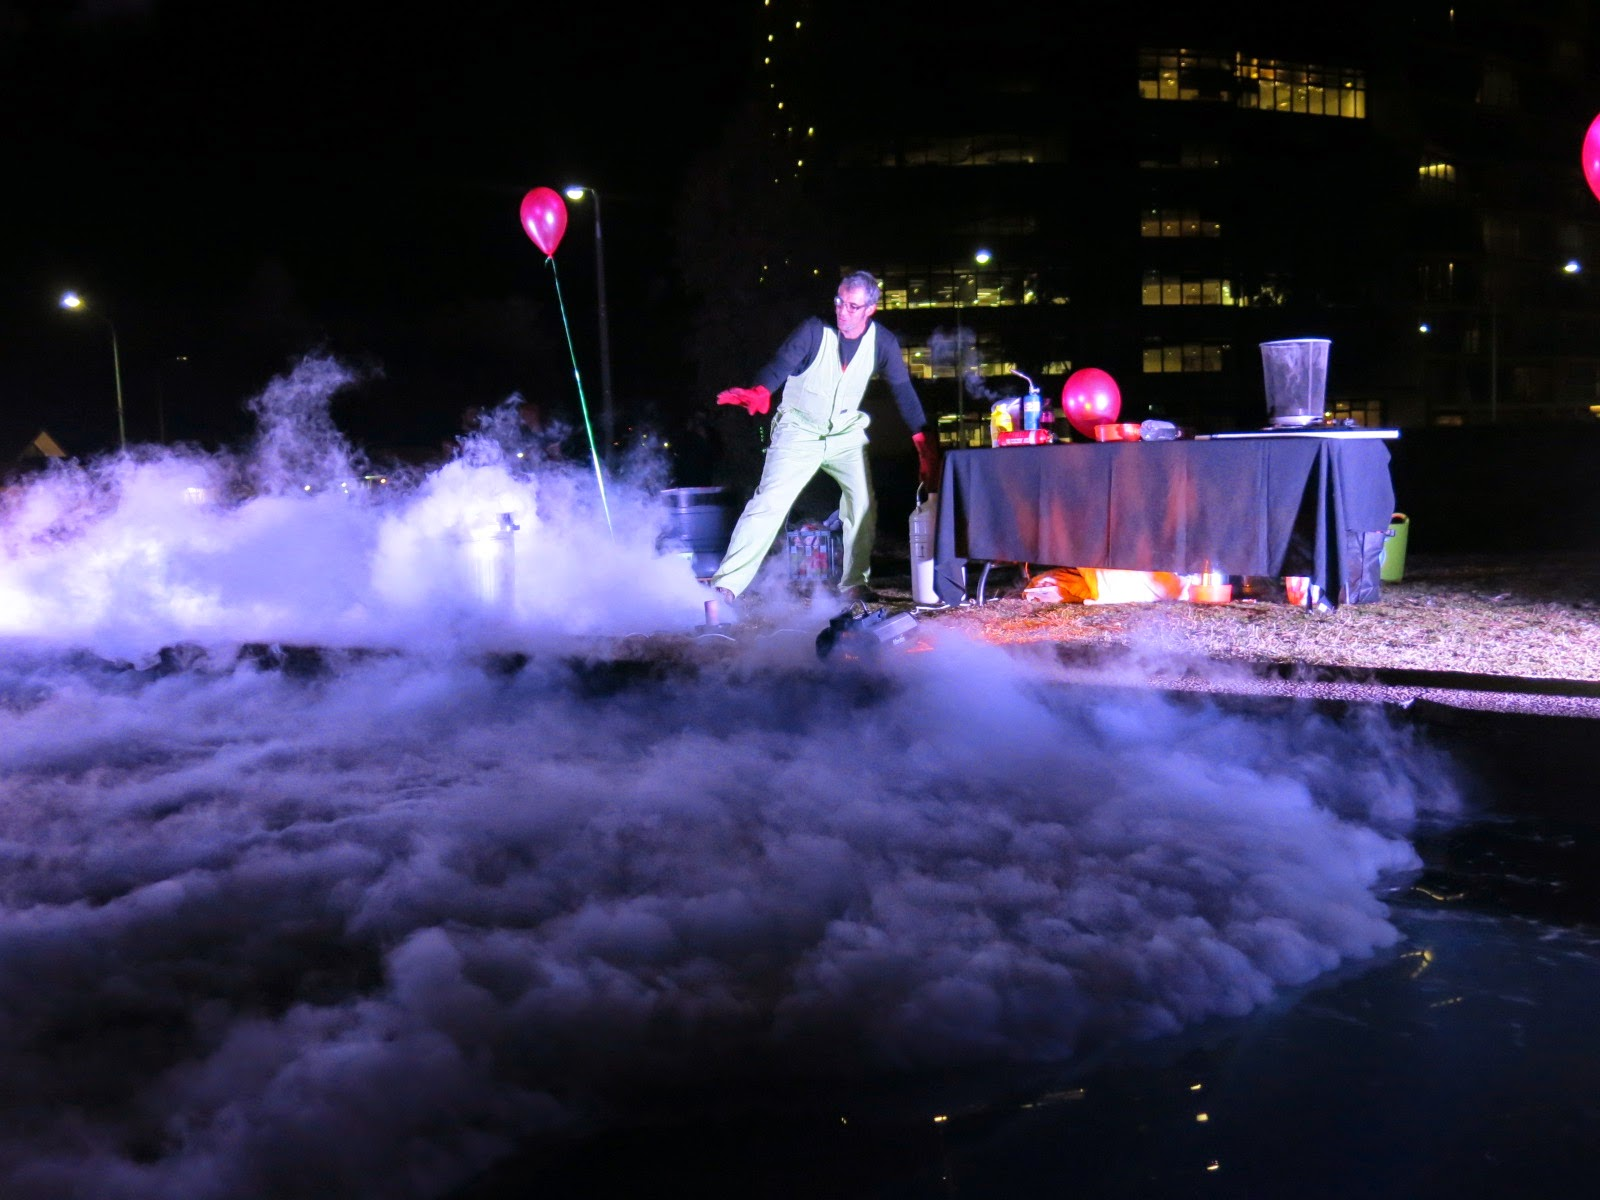 Liquid nitrogen being thrown into the Shine Dome moat